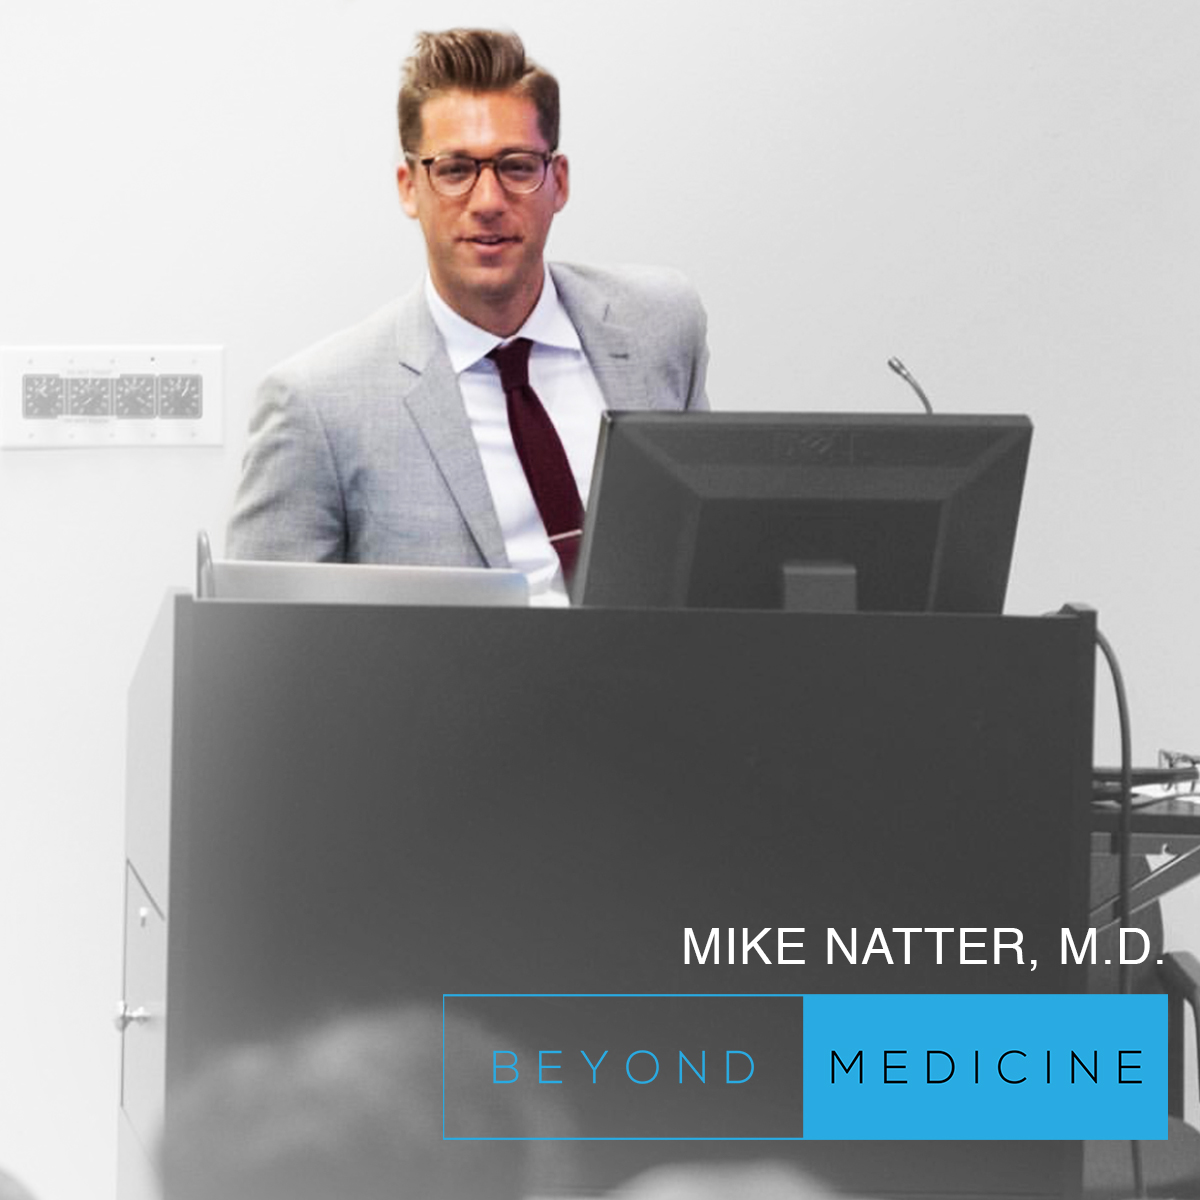 Dr. Mike Natter MD - Dr. Mike Natter MD is an Internal Medicine Resident at an NYC hospital. He shares his story with us on how he combined his talent as an artist with the practice of medicine. Through his journey, we learn the power of dedication, following your passion, and exceeding your limits.